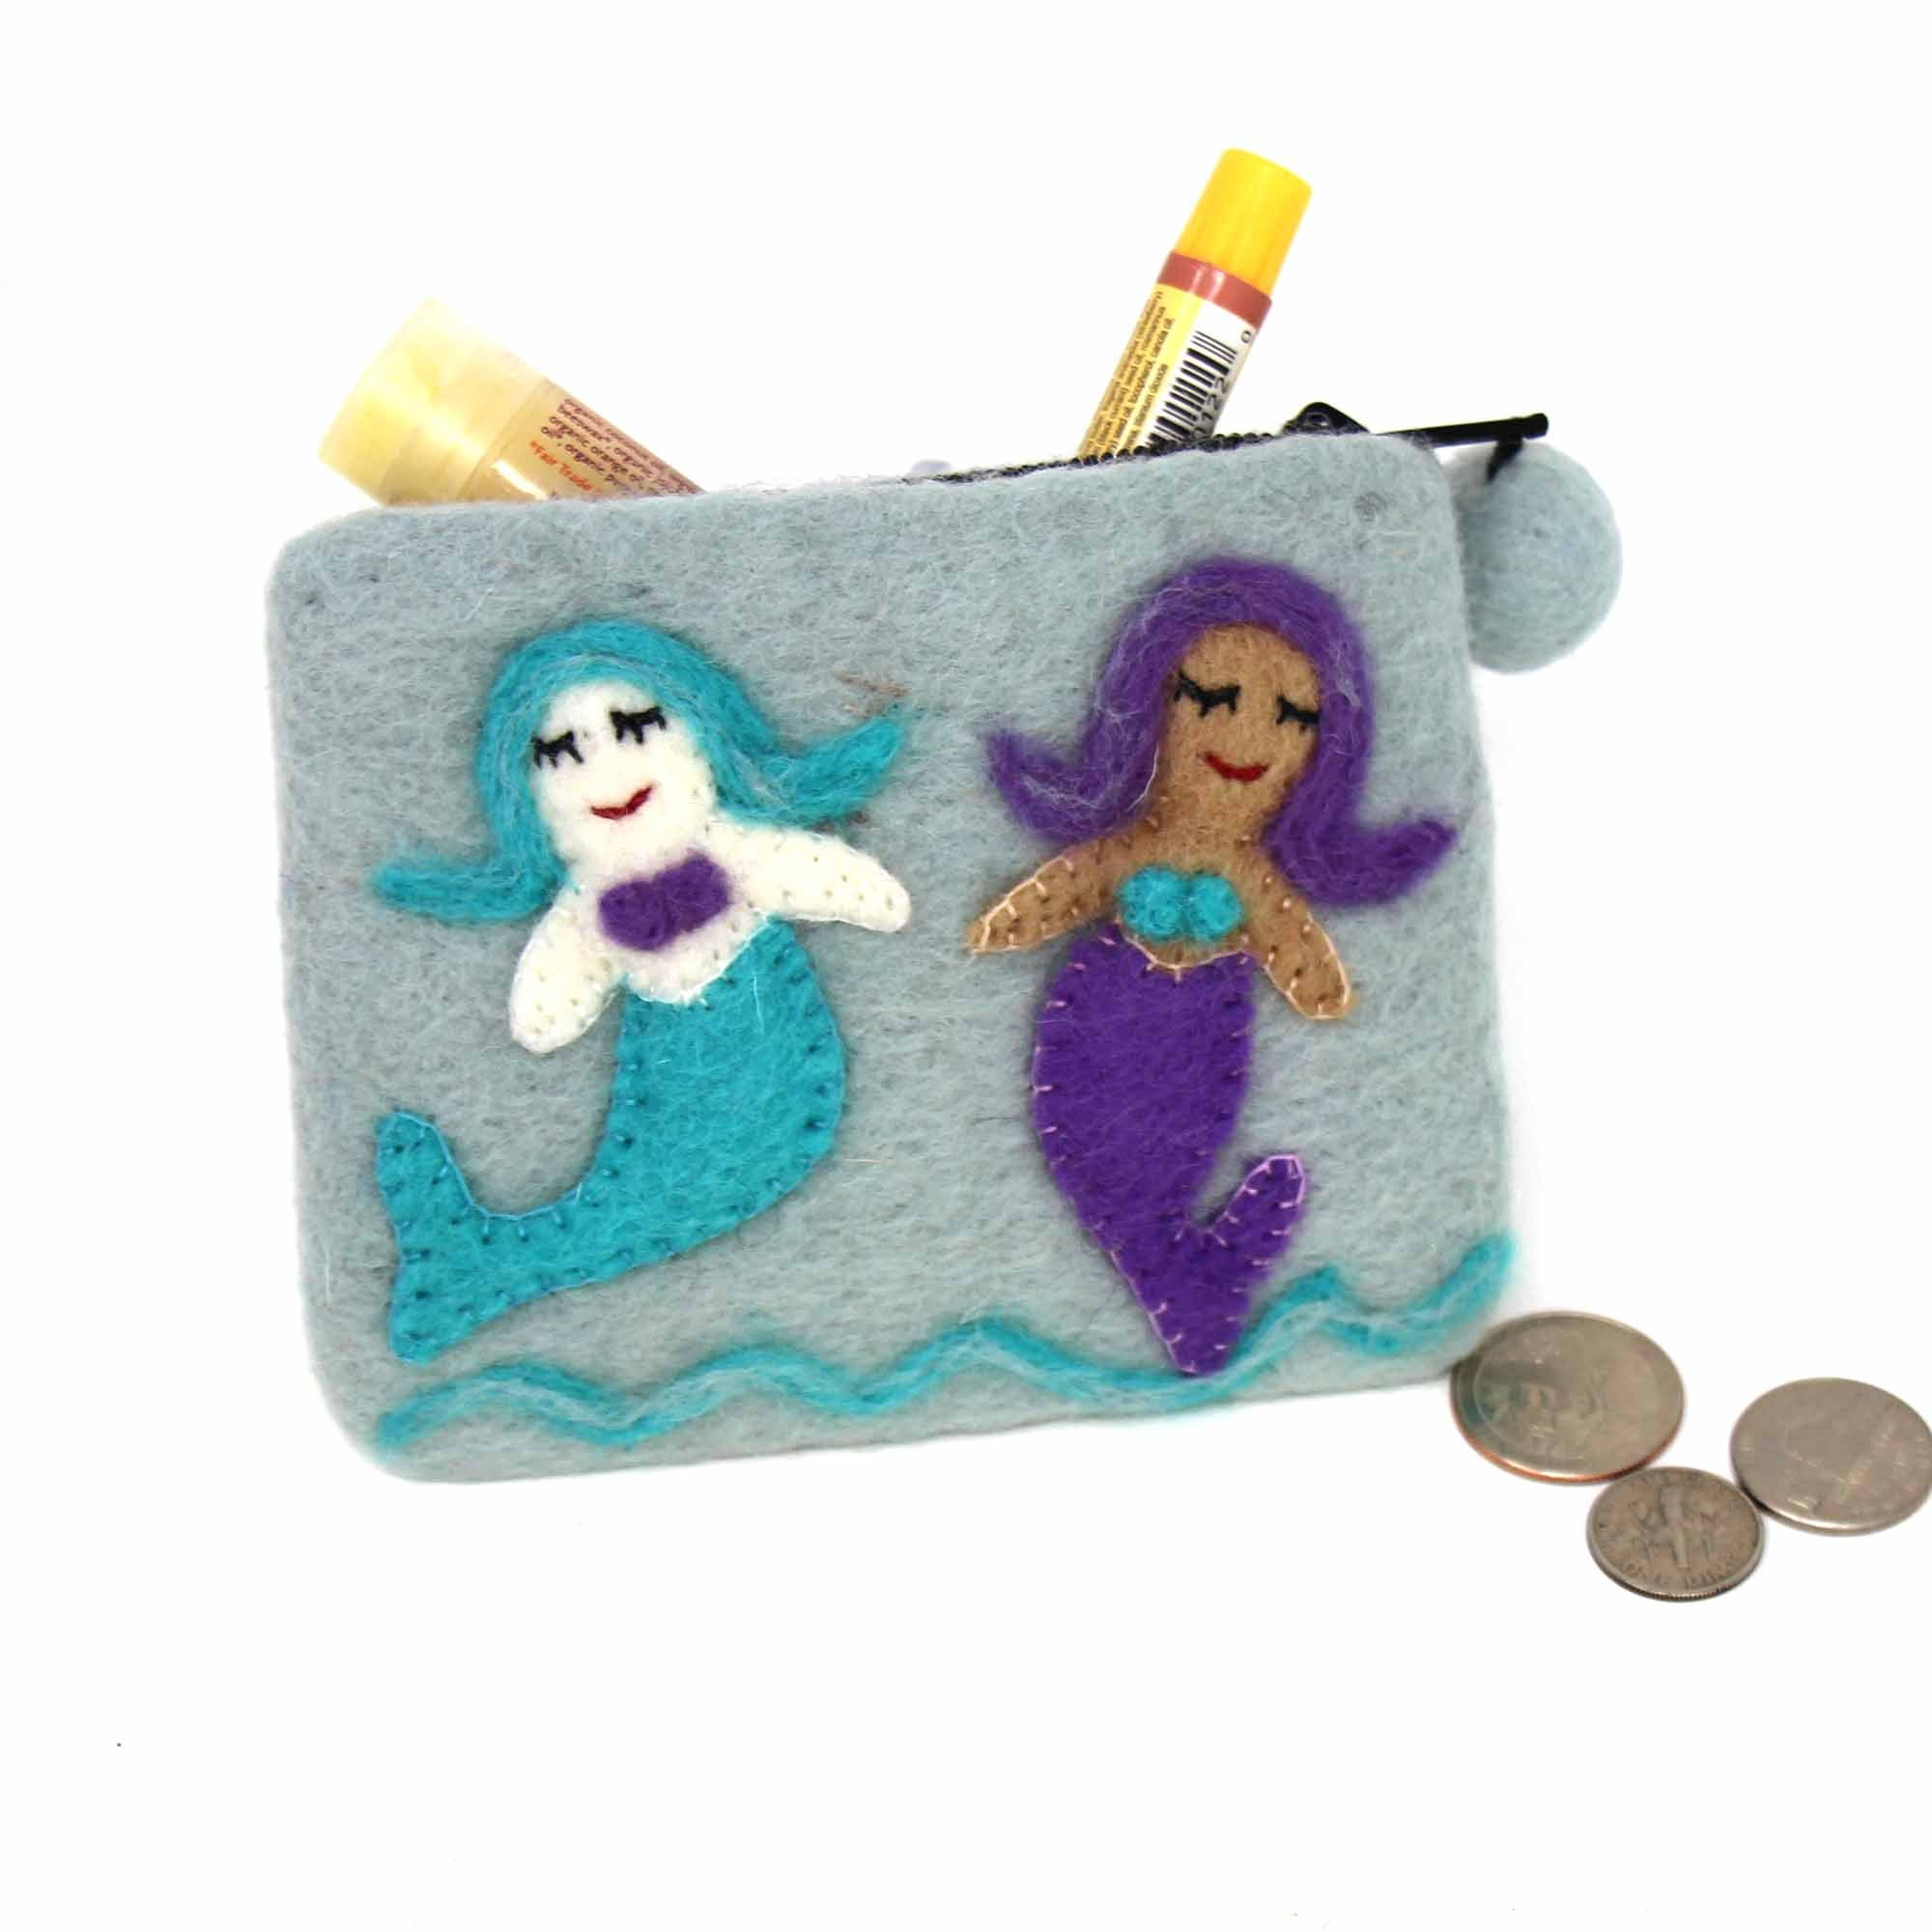 Mermaid Friends Felt Zipper Coin Purse